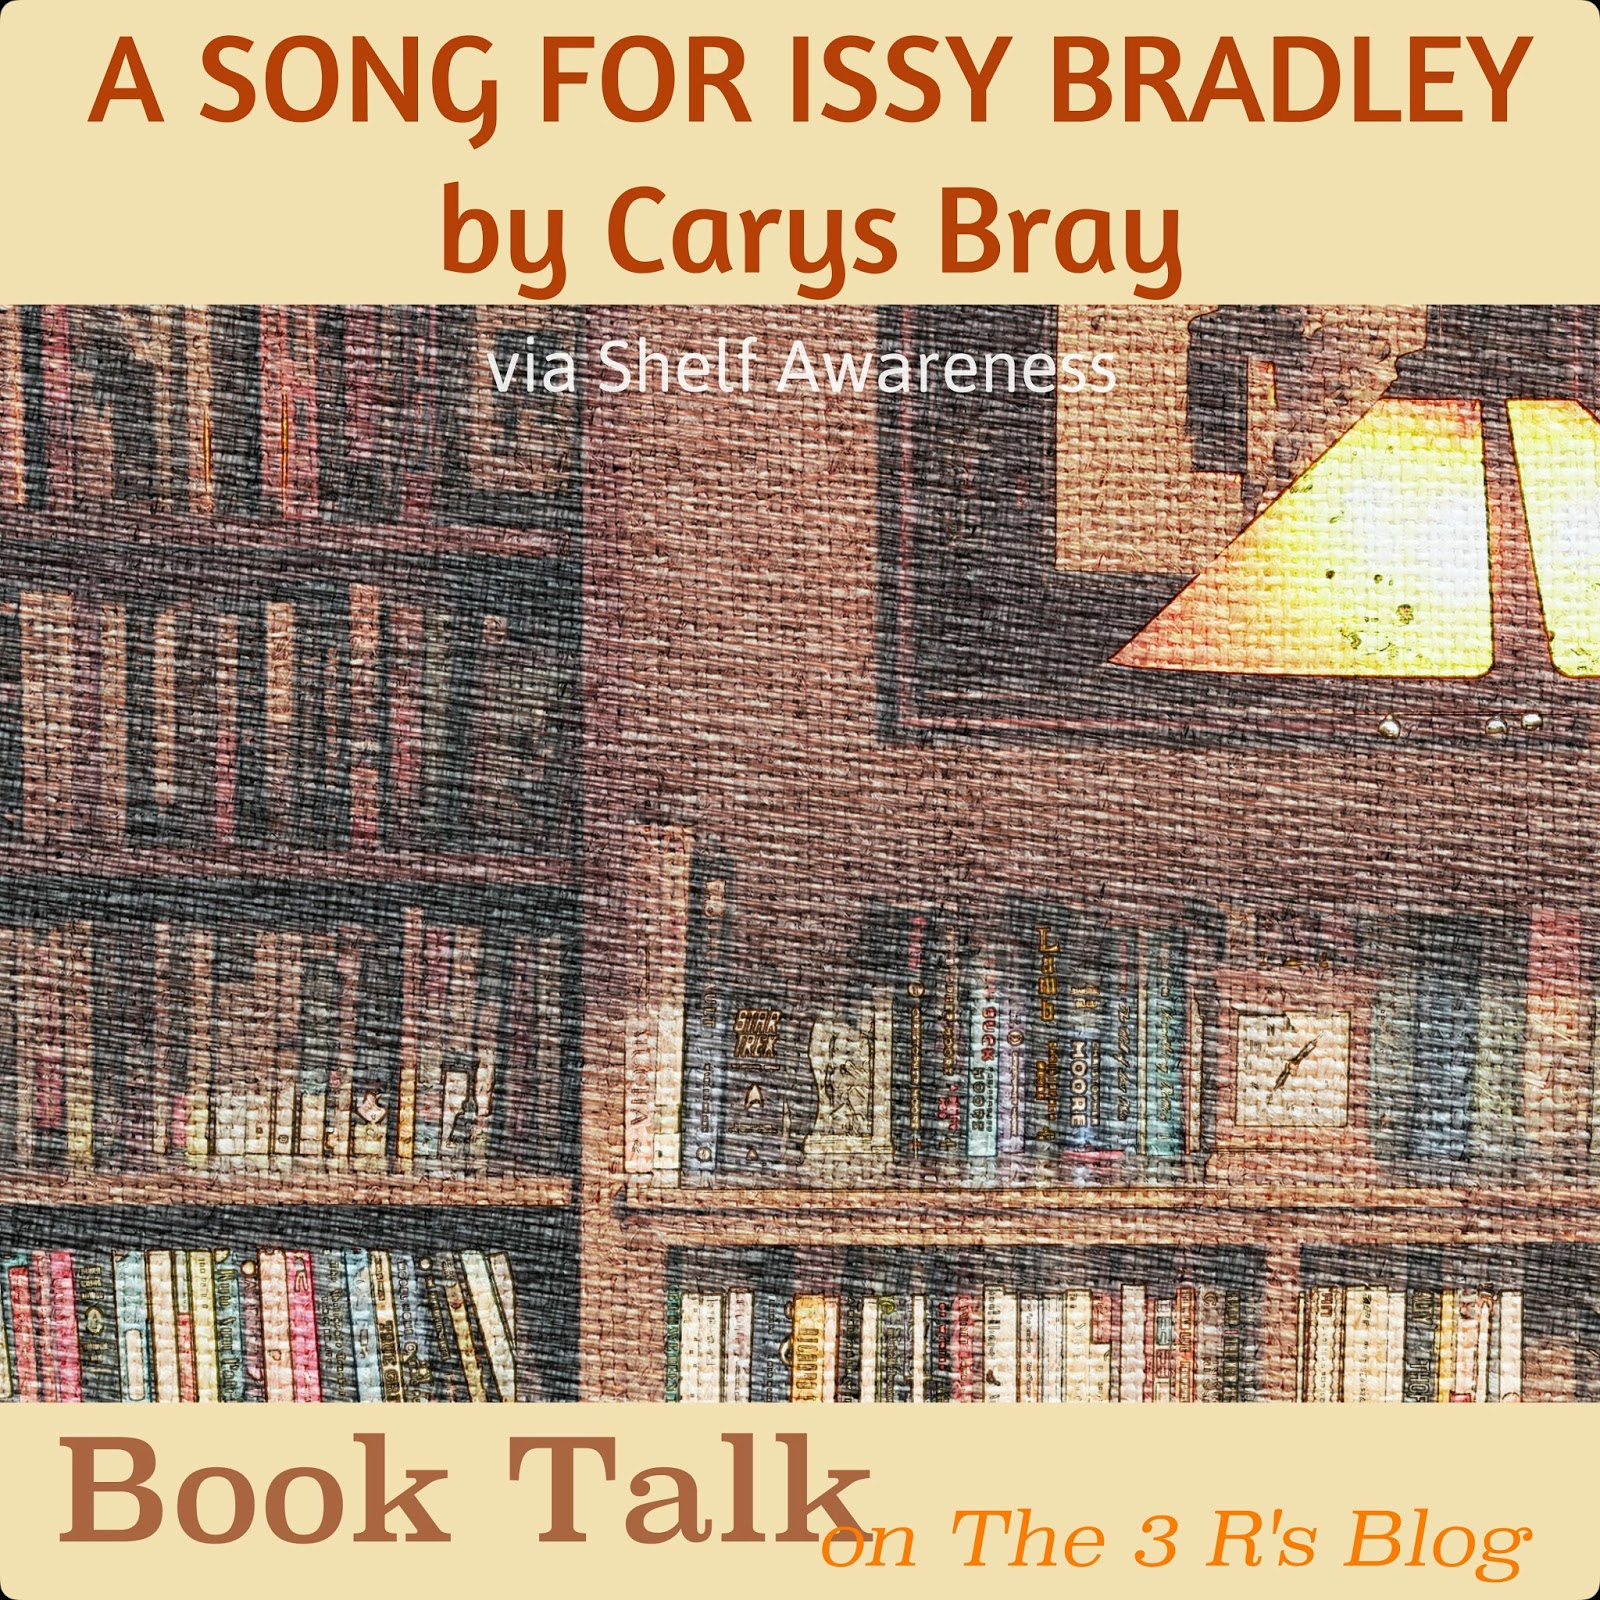 Book discussion: A SONG FOR ISSY BRADLEY on The 3 Rs Blog